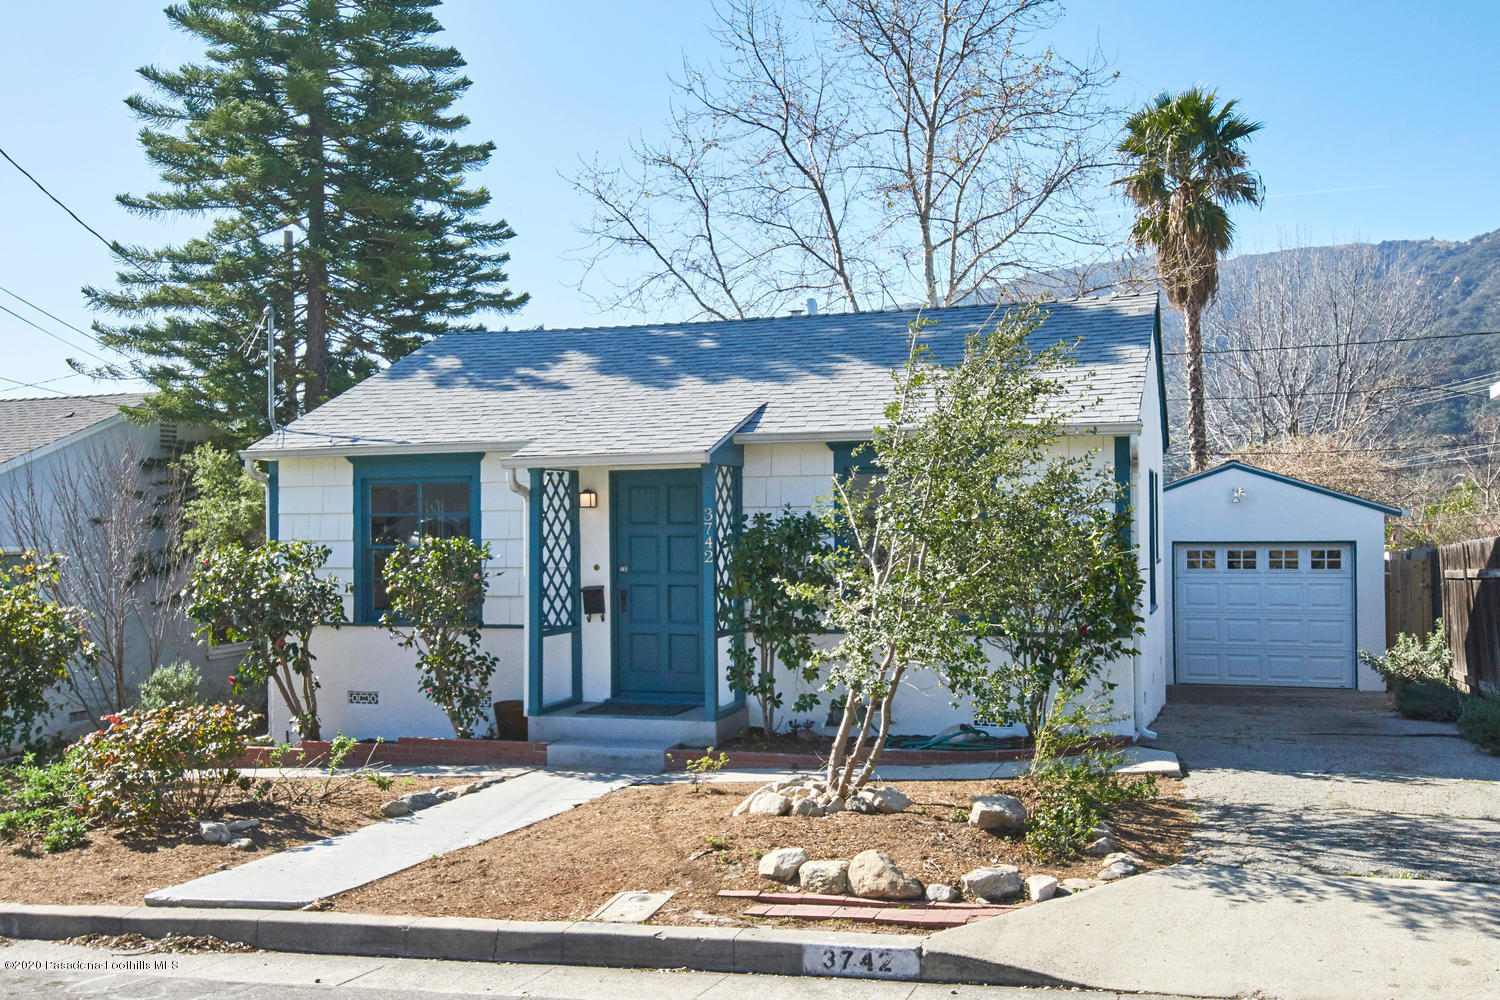 3742 5th Avenue, Glendale, California